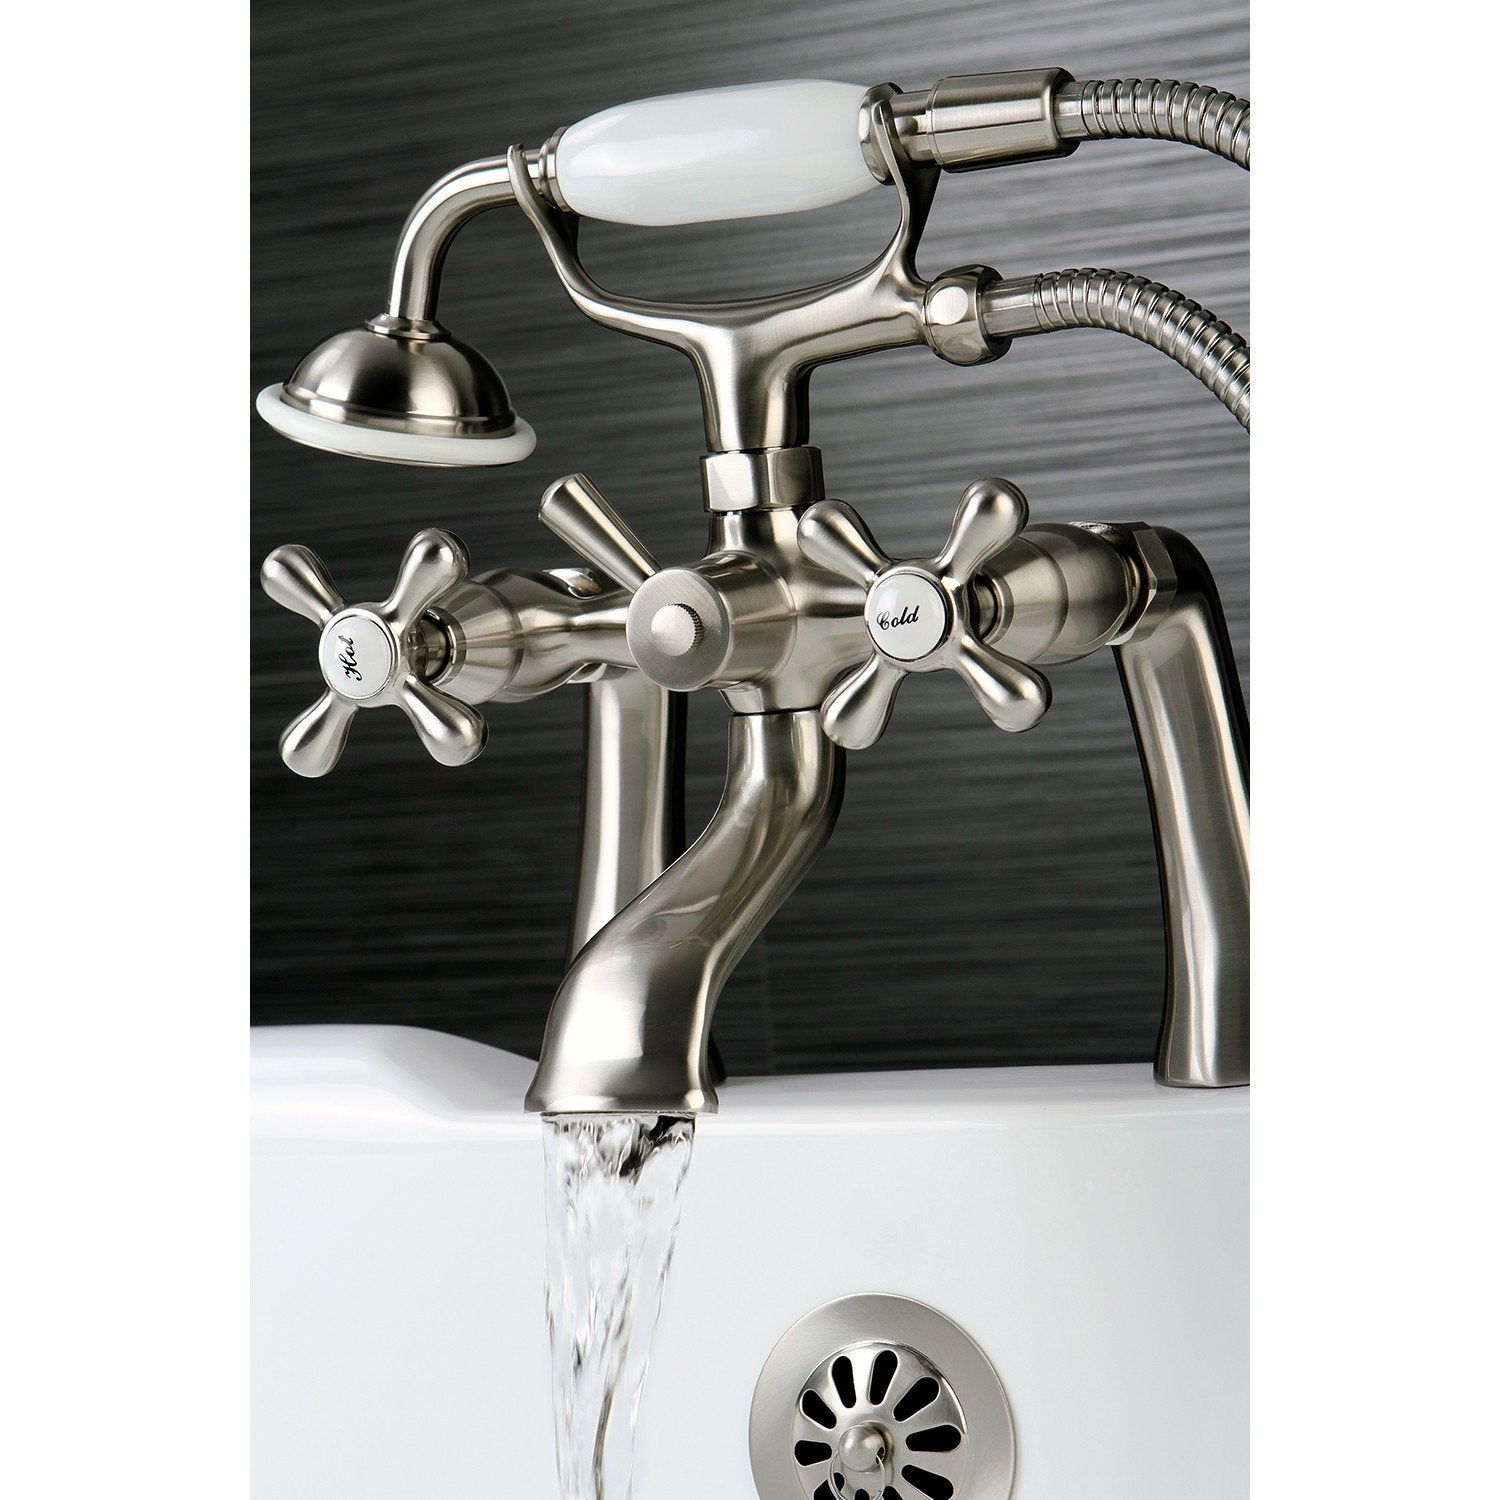 Kingston Brass Satin Nickel Deck Mount Clawfoot Tub Faucet w Hand ...